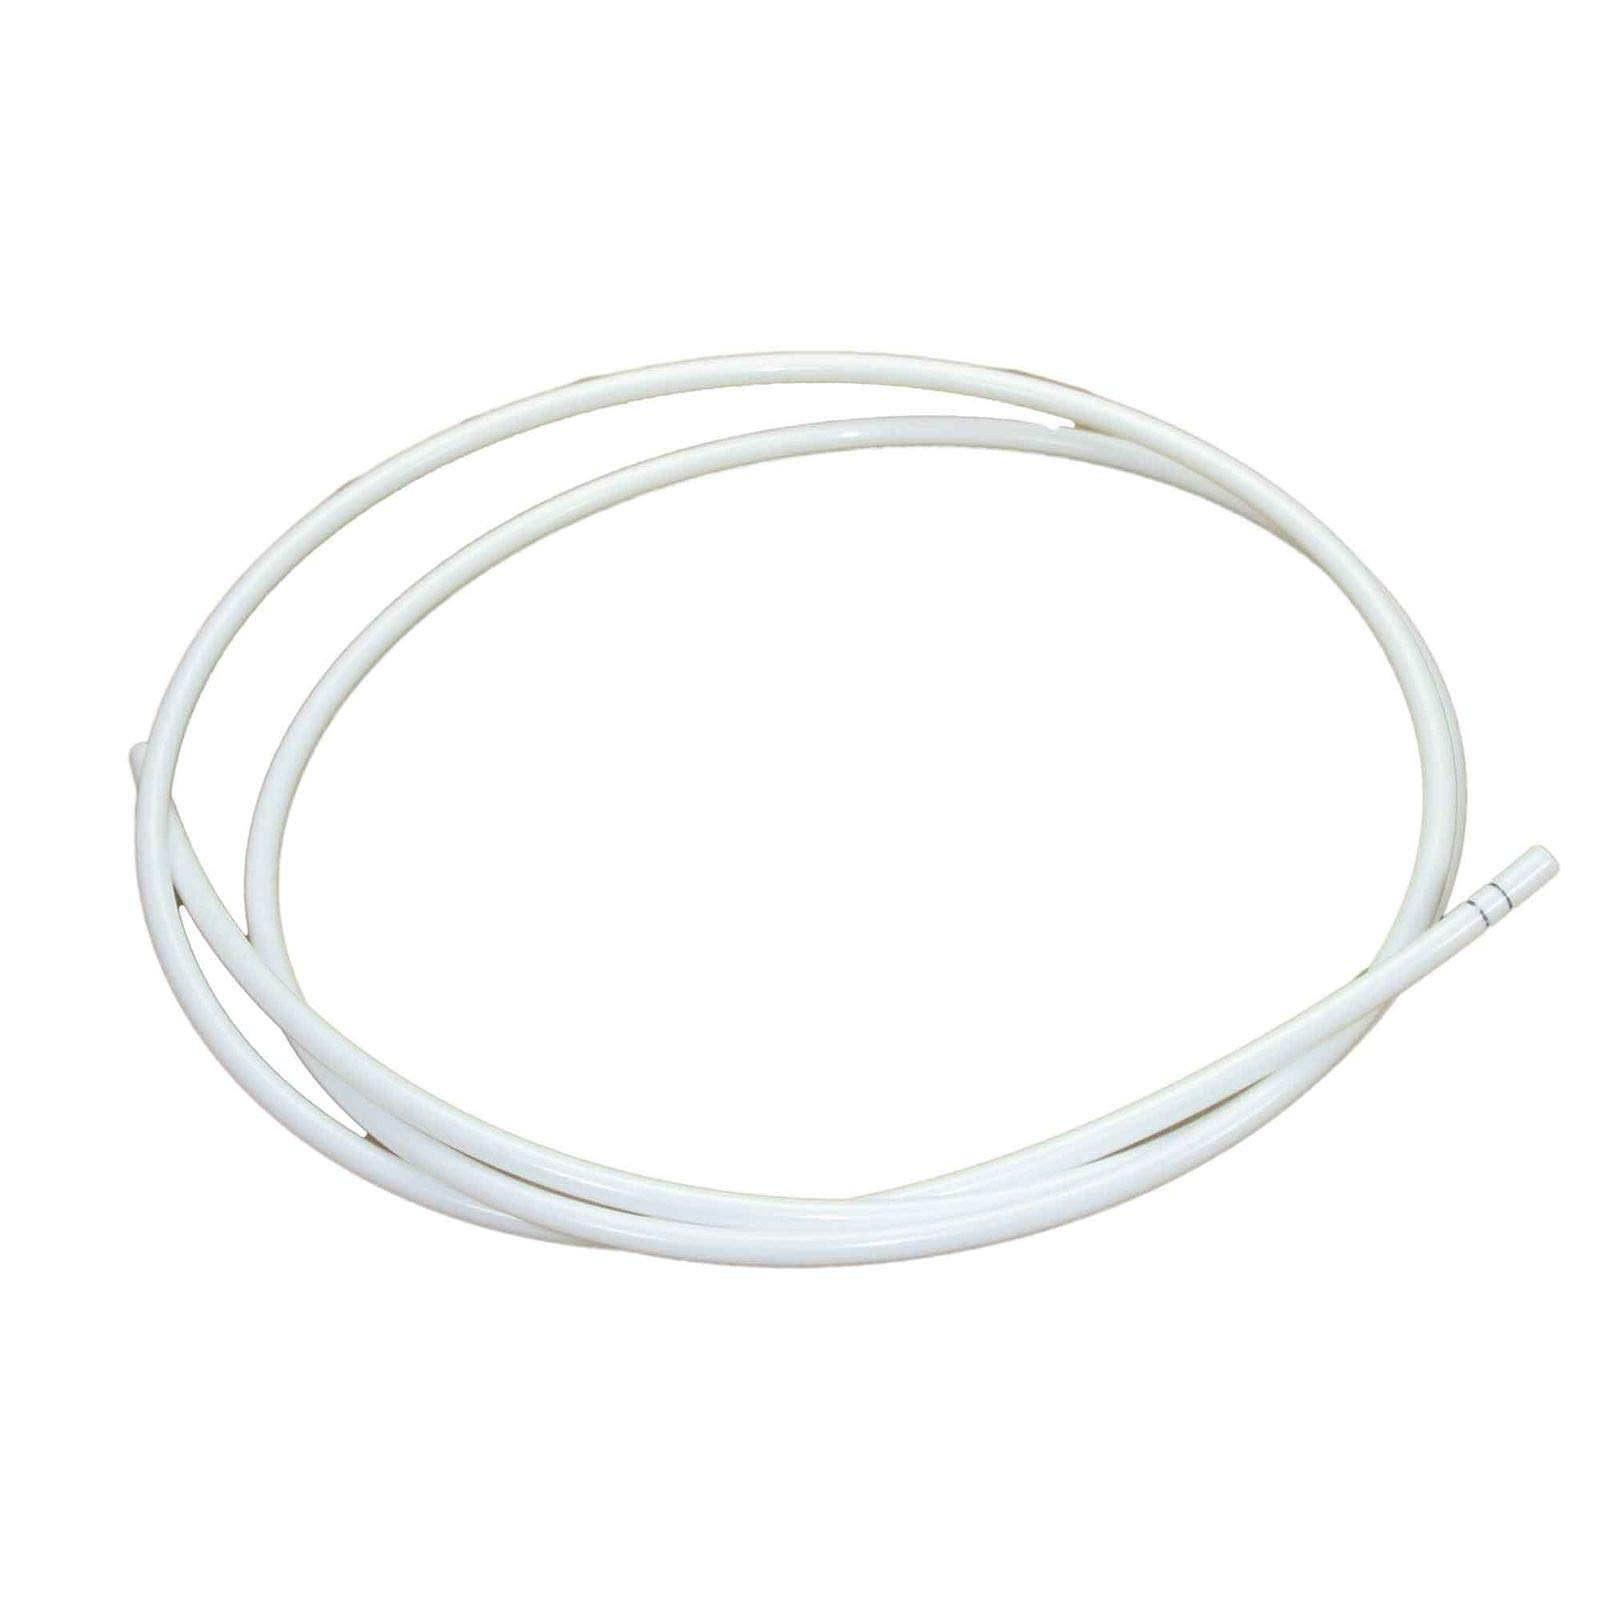 MJU62070603 For LG Refrigerator Water Line